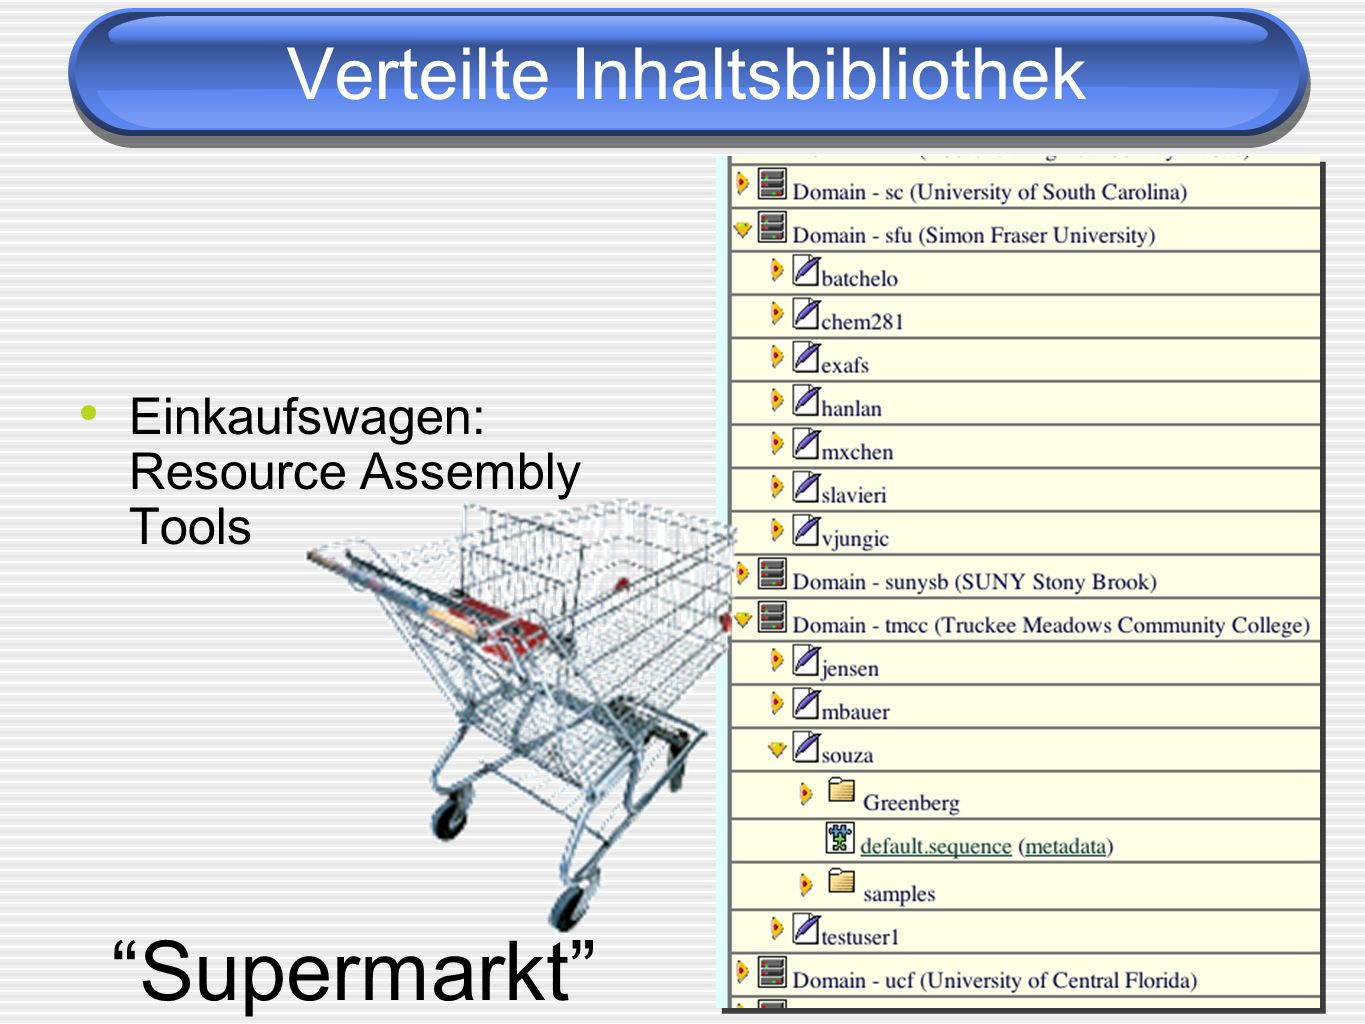 Verteilte Inhaltsbibliothek Supermarkt Einkaufswagen: Resource Assembly Tools